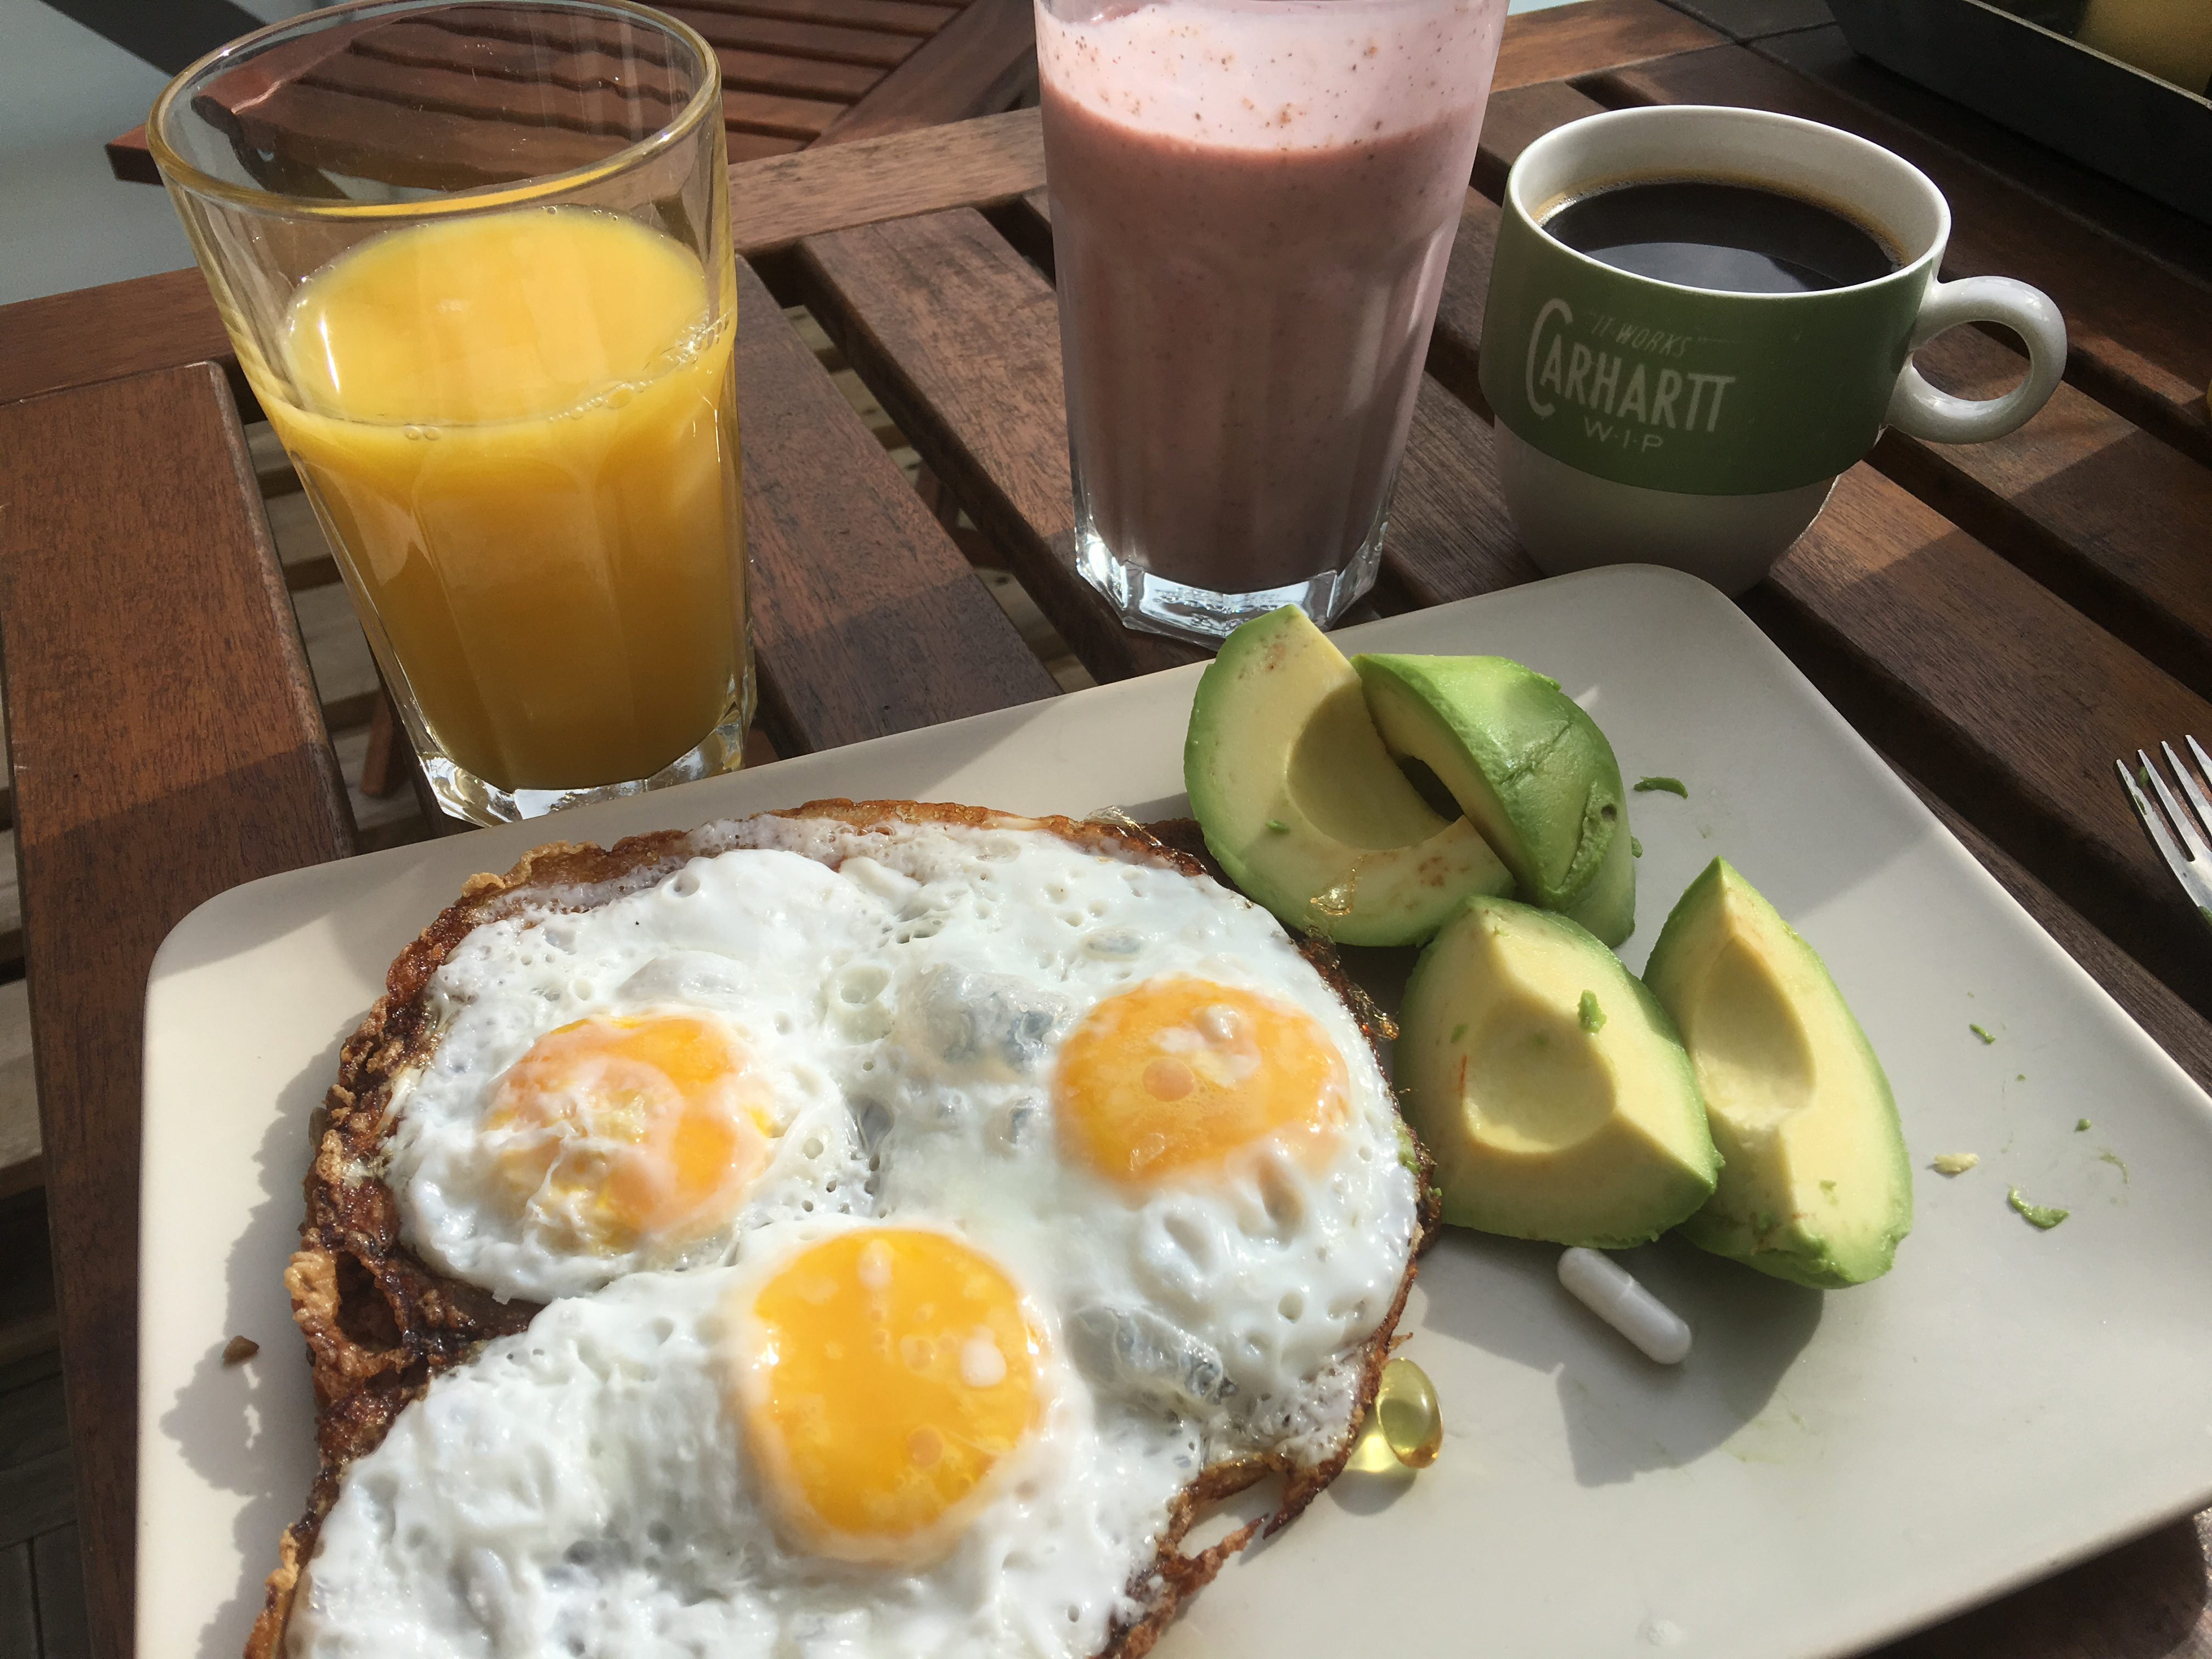 Starting the day with a GOOD breakfast is important if you wanna last for sessions and sessions...this is a hammer meal.